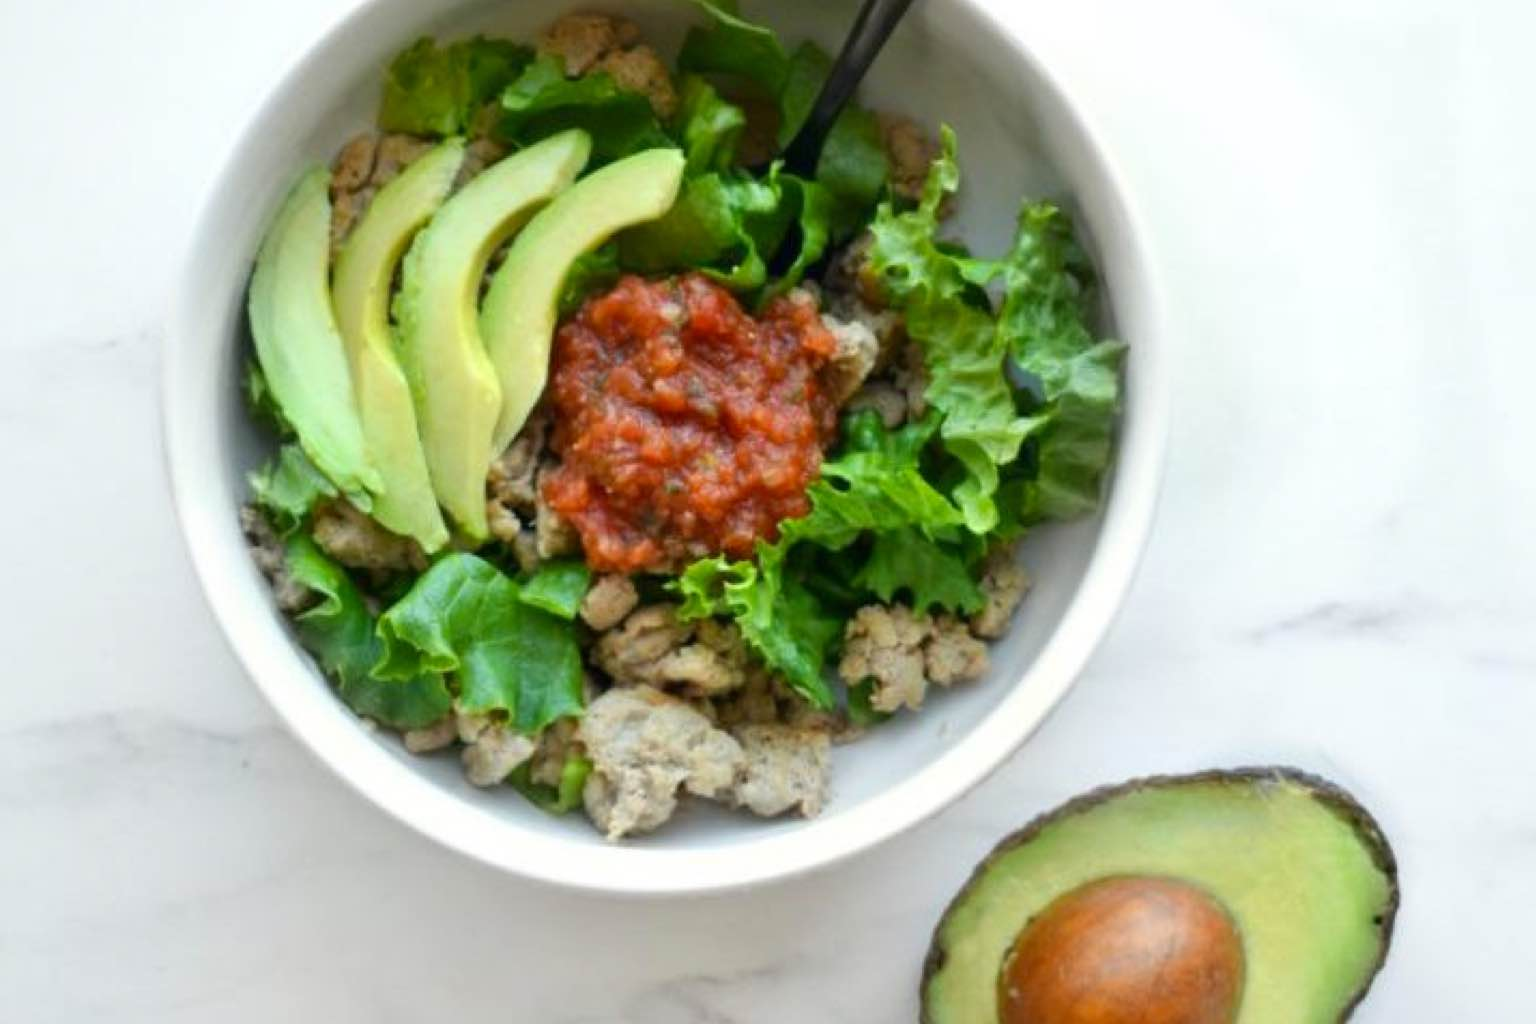 Taco bowl with avocado, salsa, ground meat and lettuce